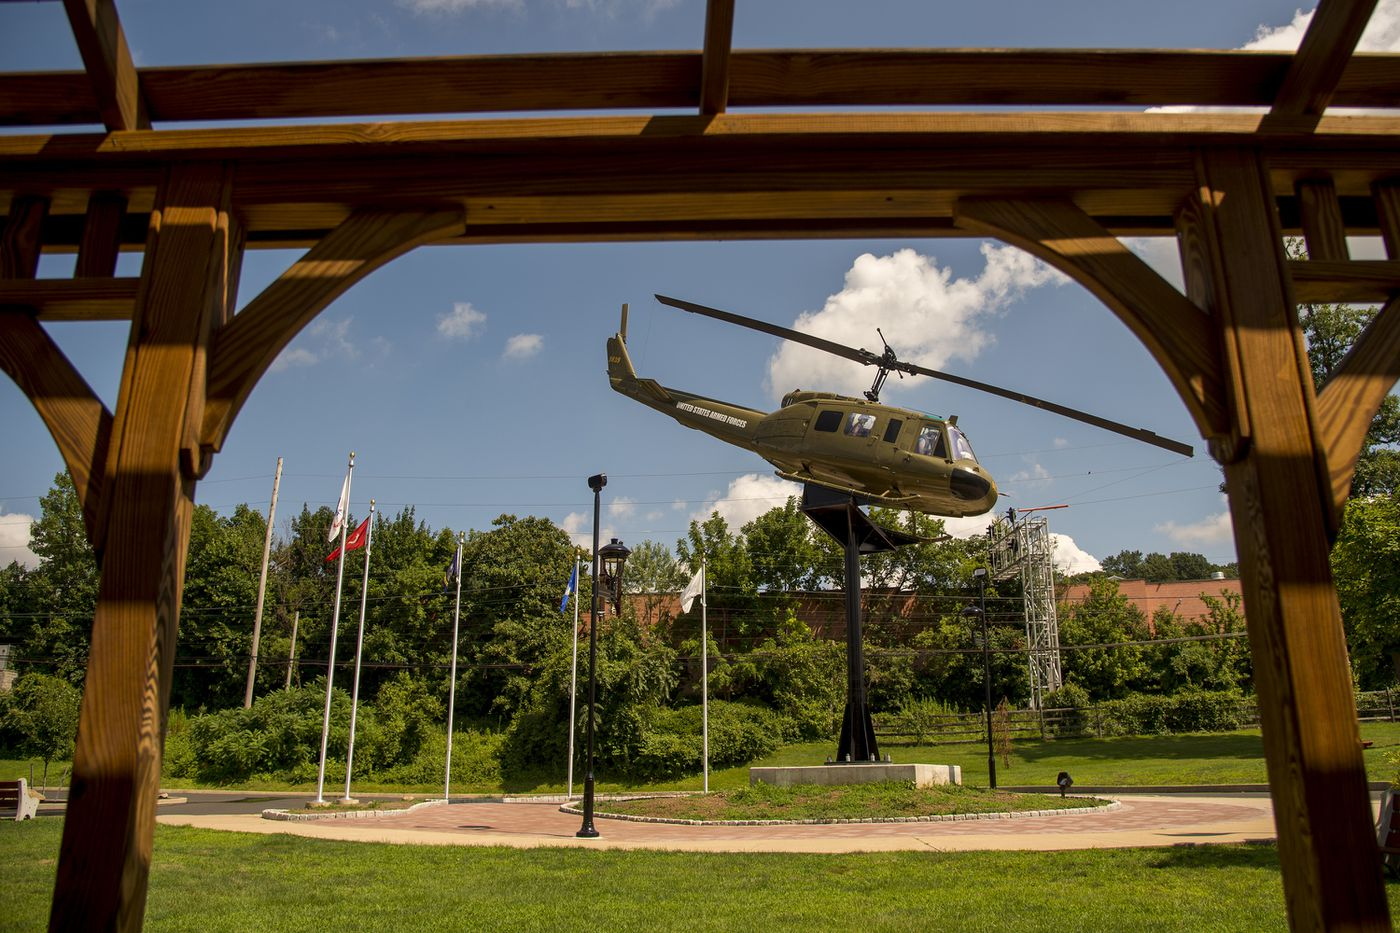 A Vietnam War-era Bell UH-1 Iroquois Huey helicopter in Willow Grove's Veterans Memorial Park. Ralph Storti, a Vietnam War veteran, spent 14 years working to bring to life his vision of the memorial that would honor members of all branches of the armed services.